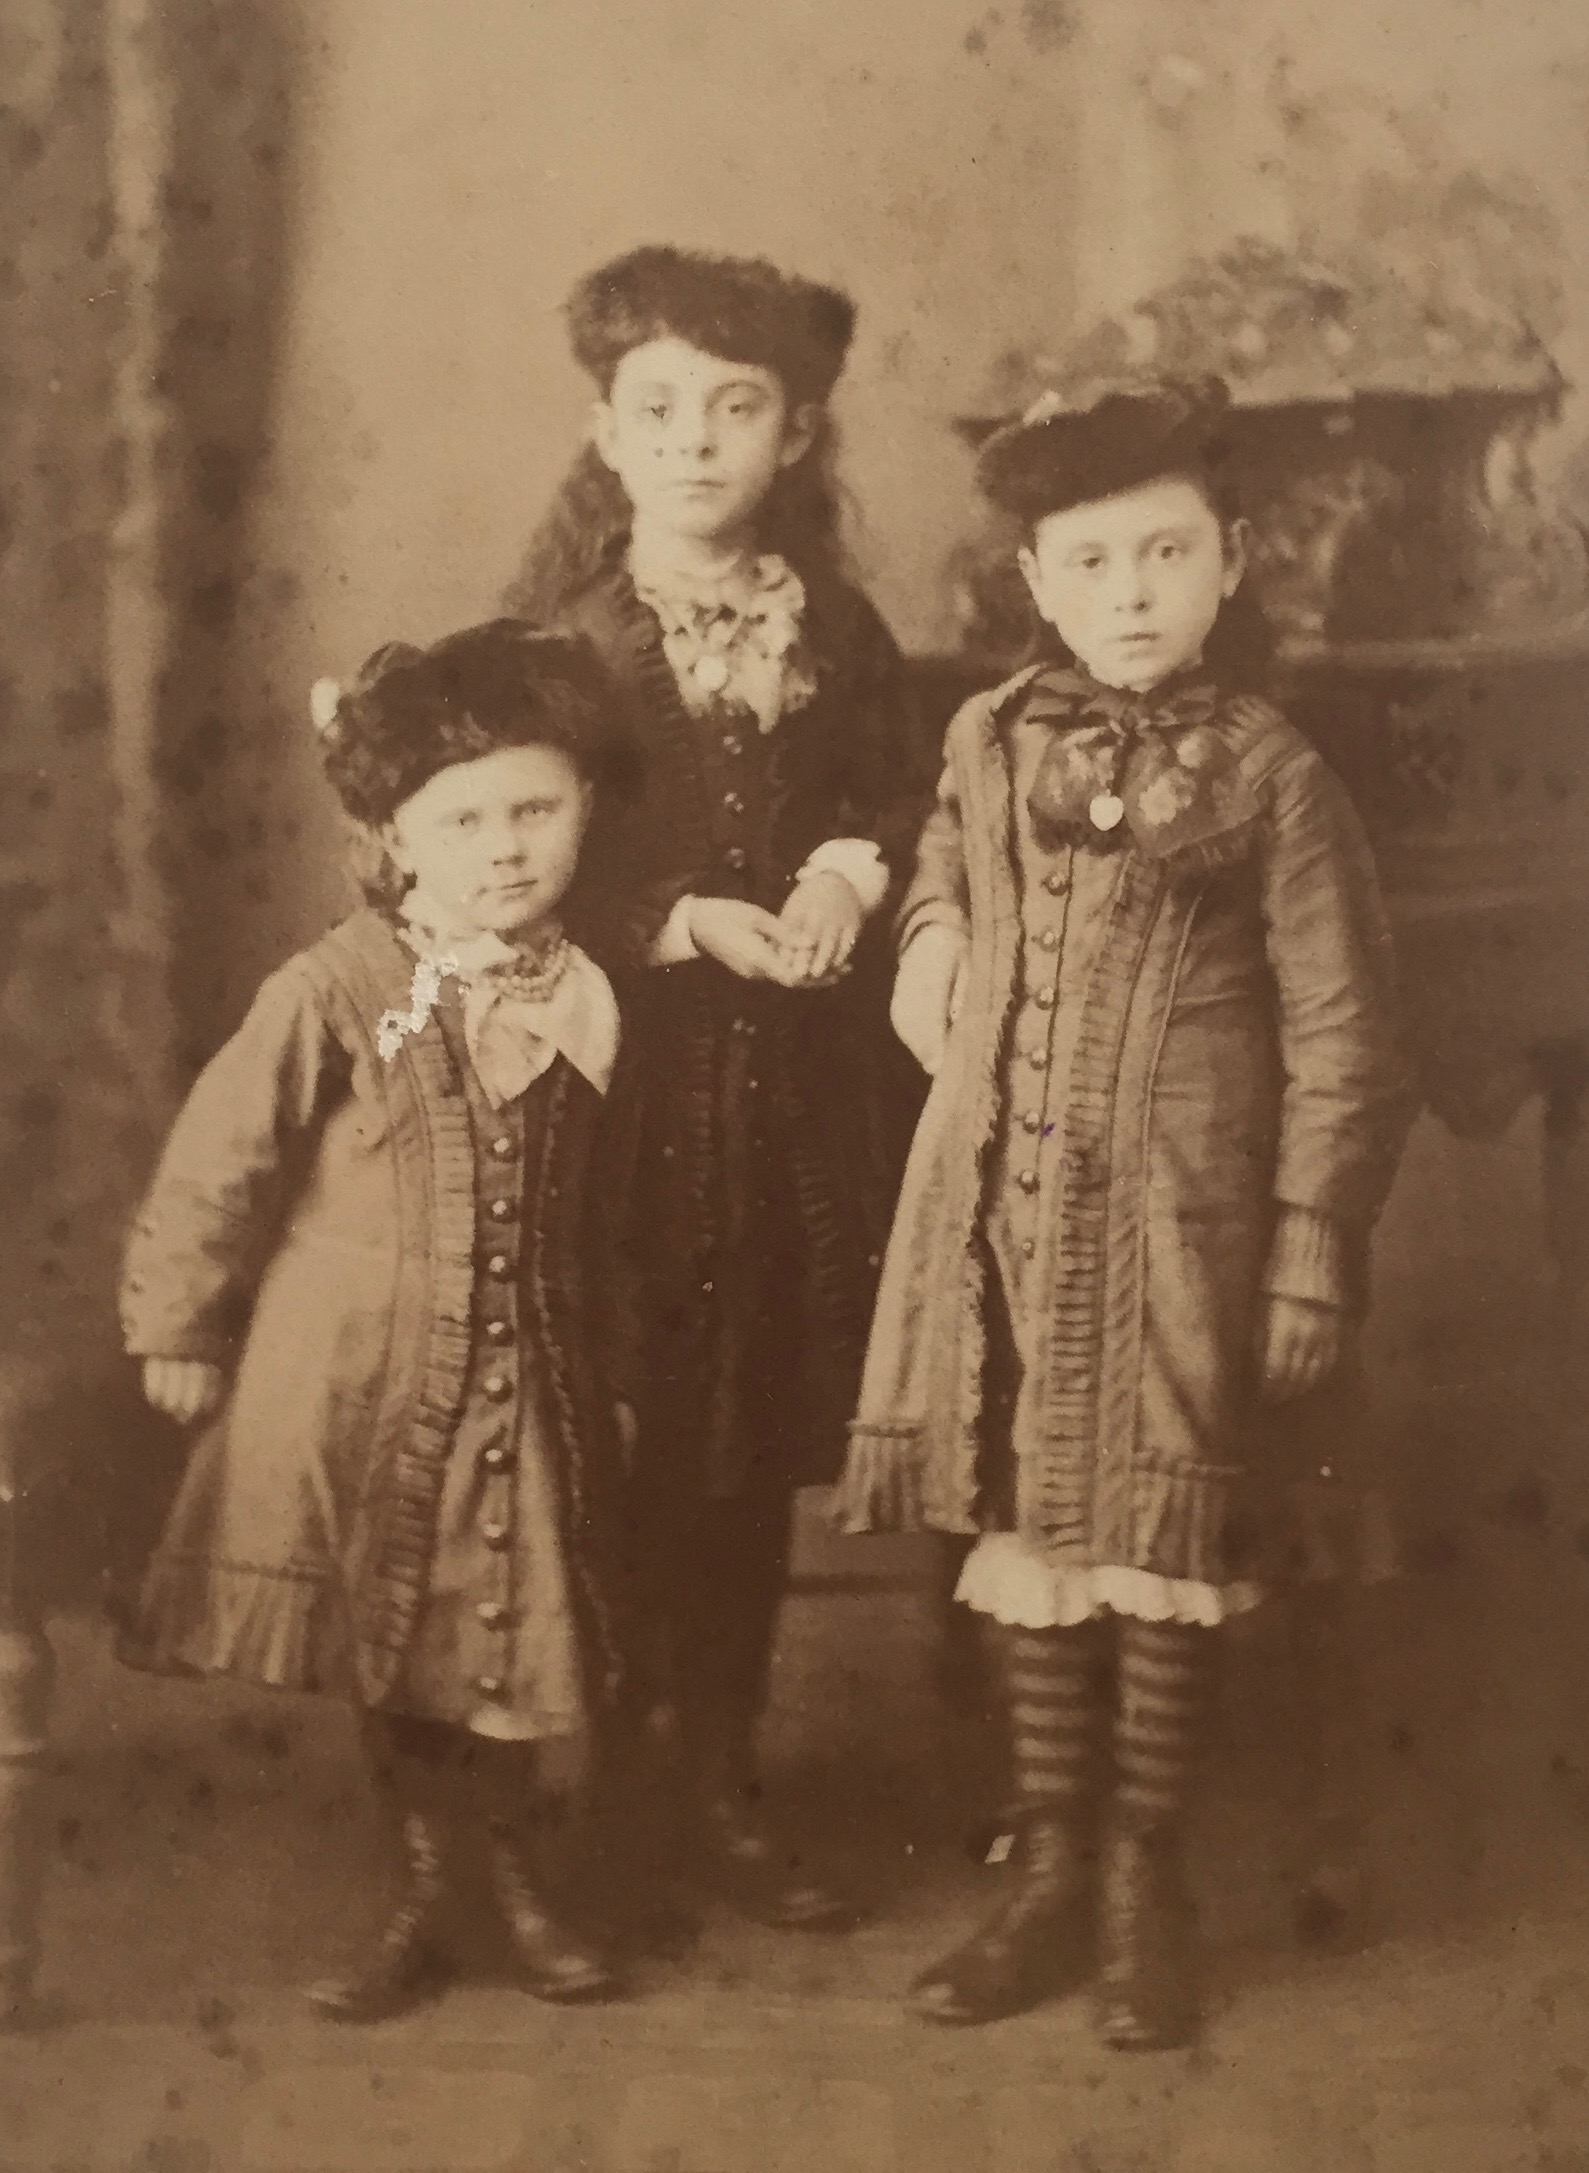 Photo: Harries/Stone family albums